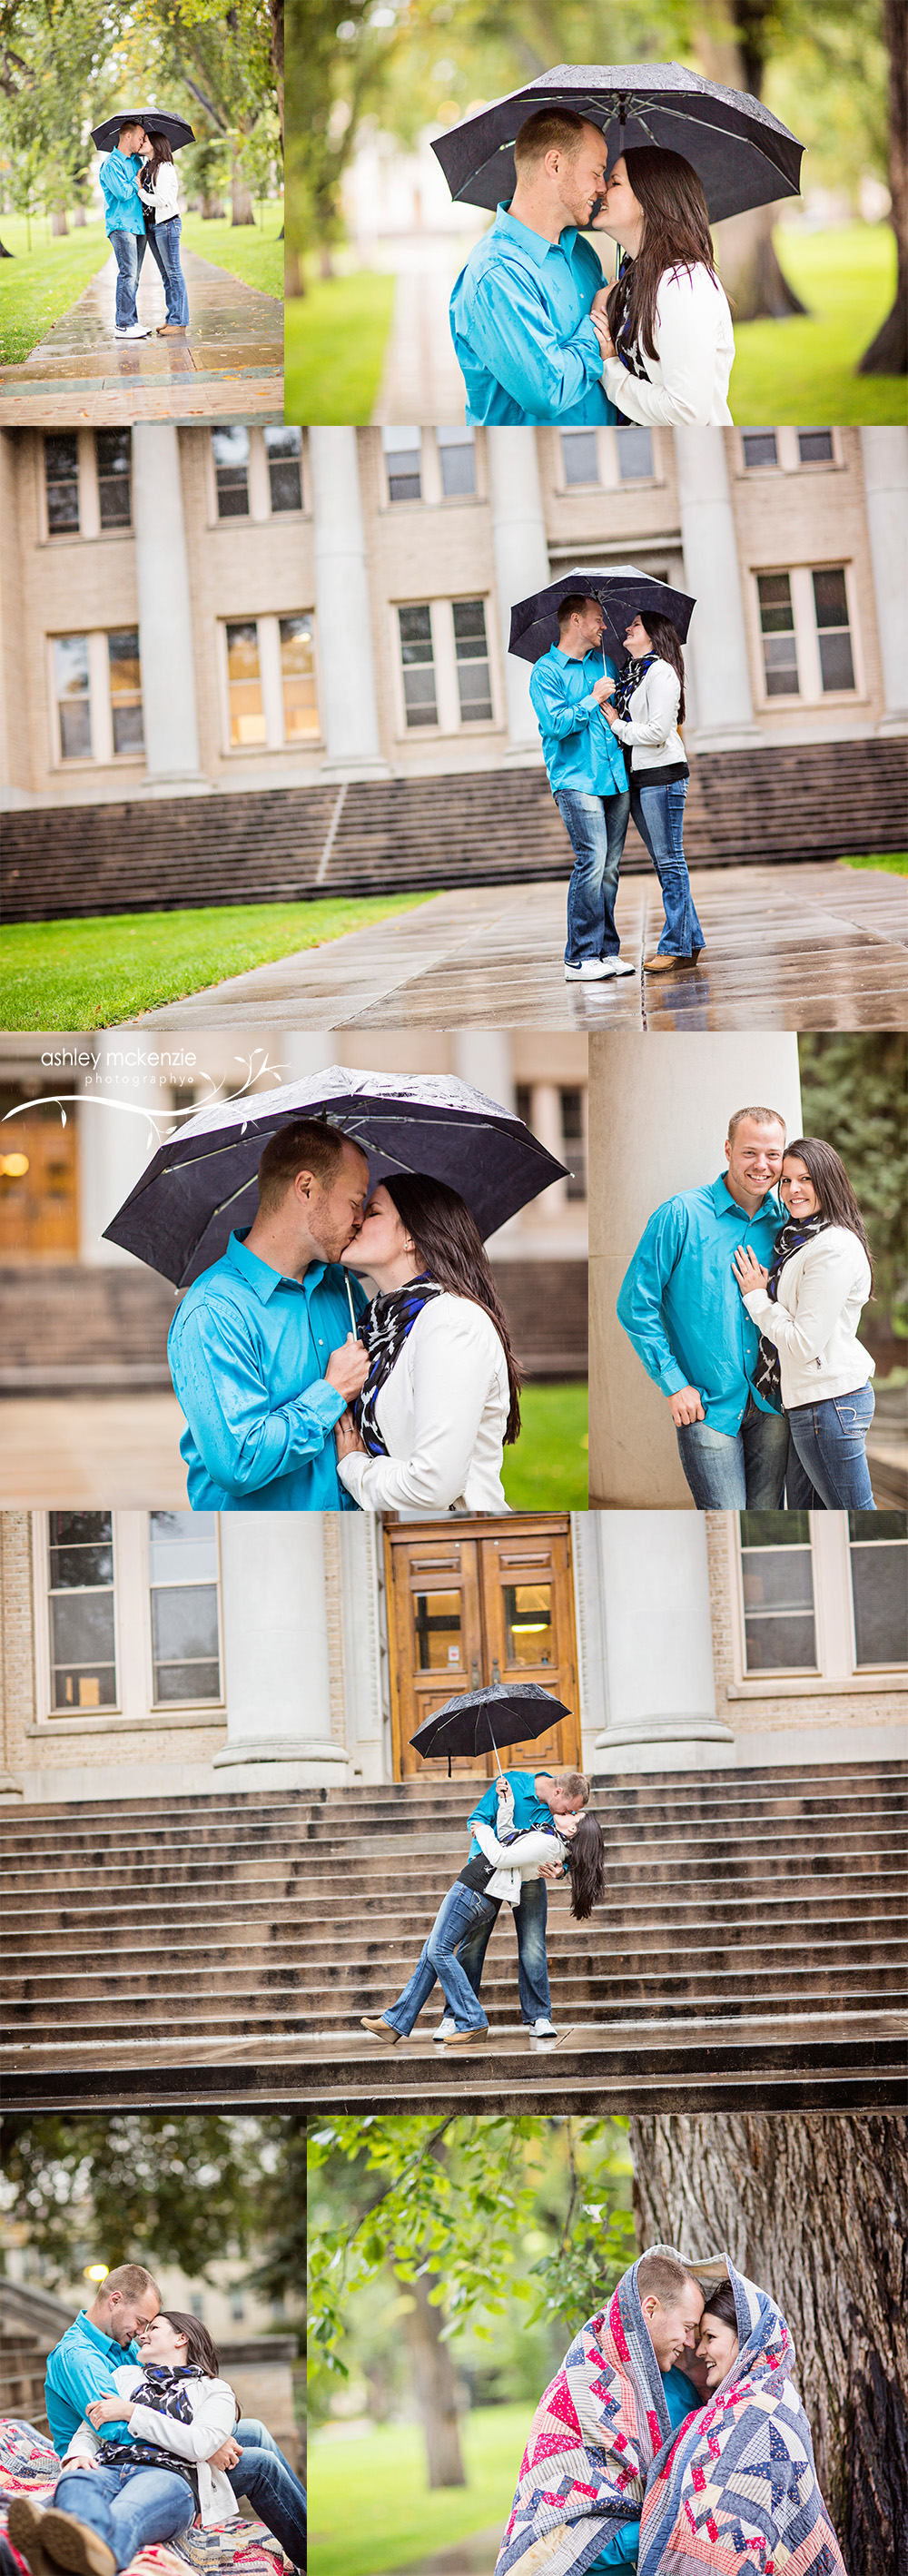 Engagement Photography By ashley McKenzie Photography in Fort Collins, CO